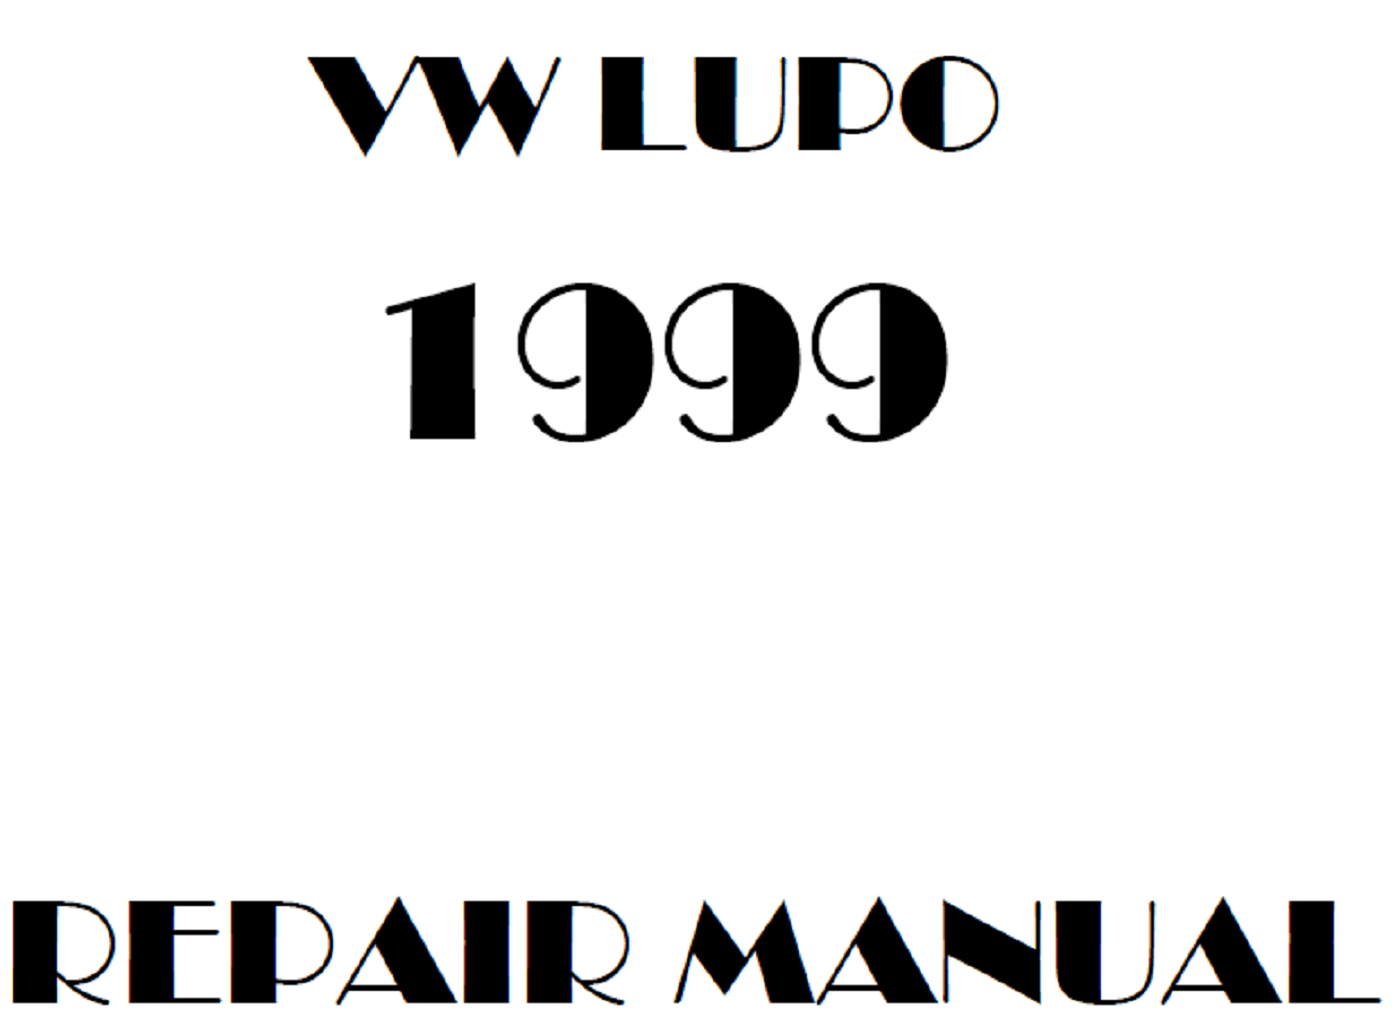 1999 Volkswagen Lupo repair manual